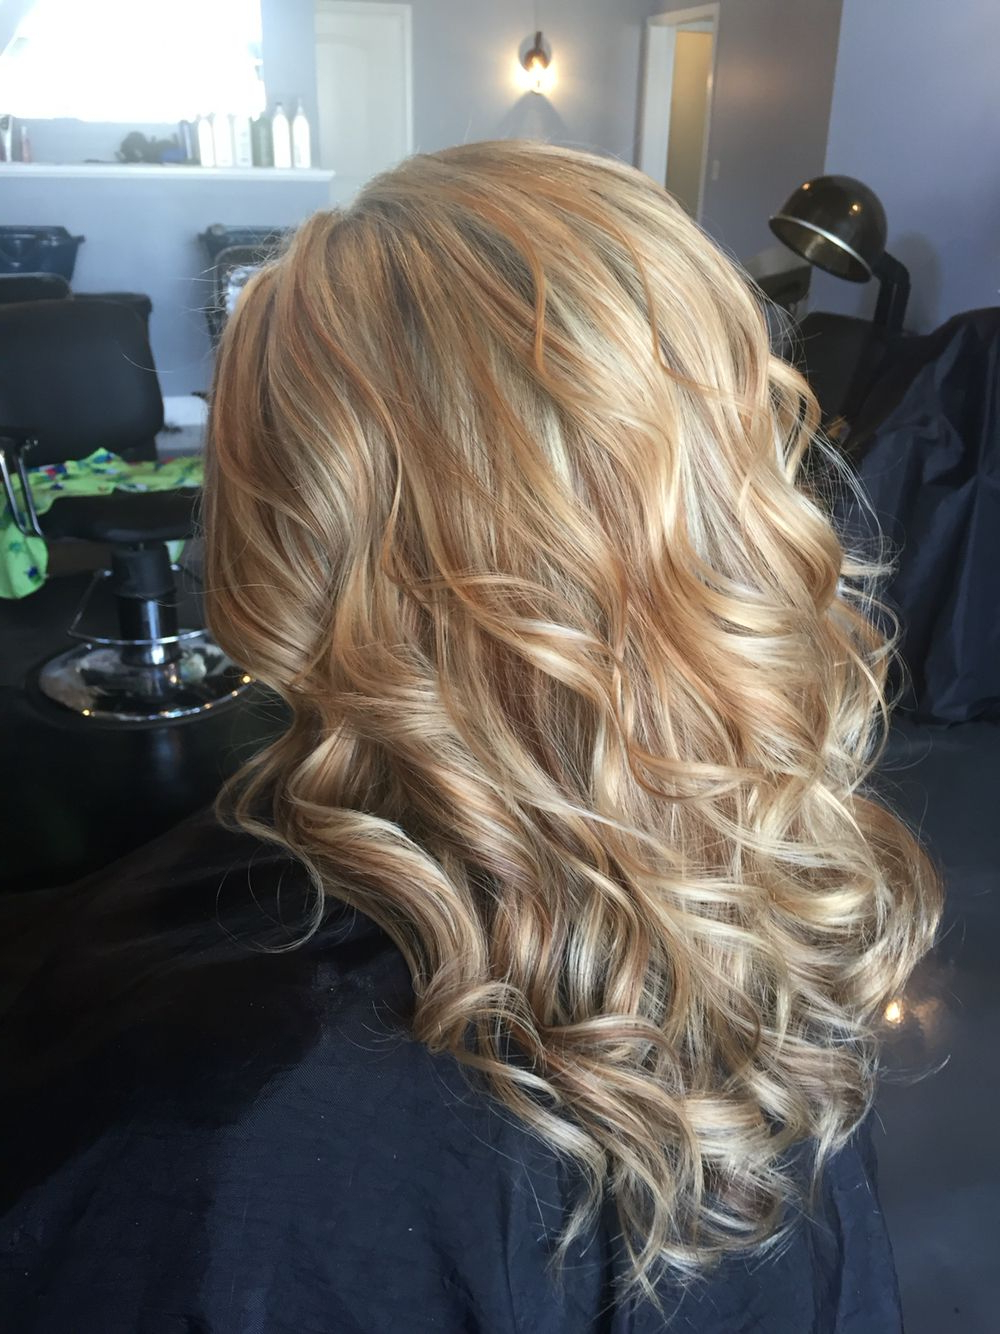 Well Known Honey Kissed Highlights Curls Hairstyles For White Blonde Highlighted With Warm Caramel And Coffee (View 4 of 20)